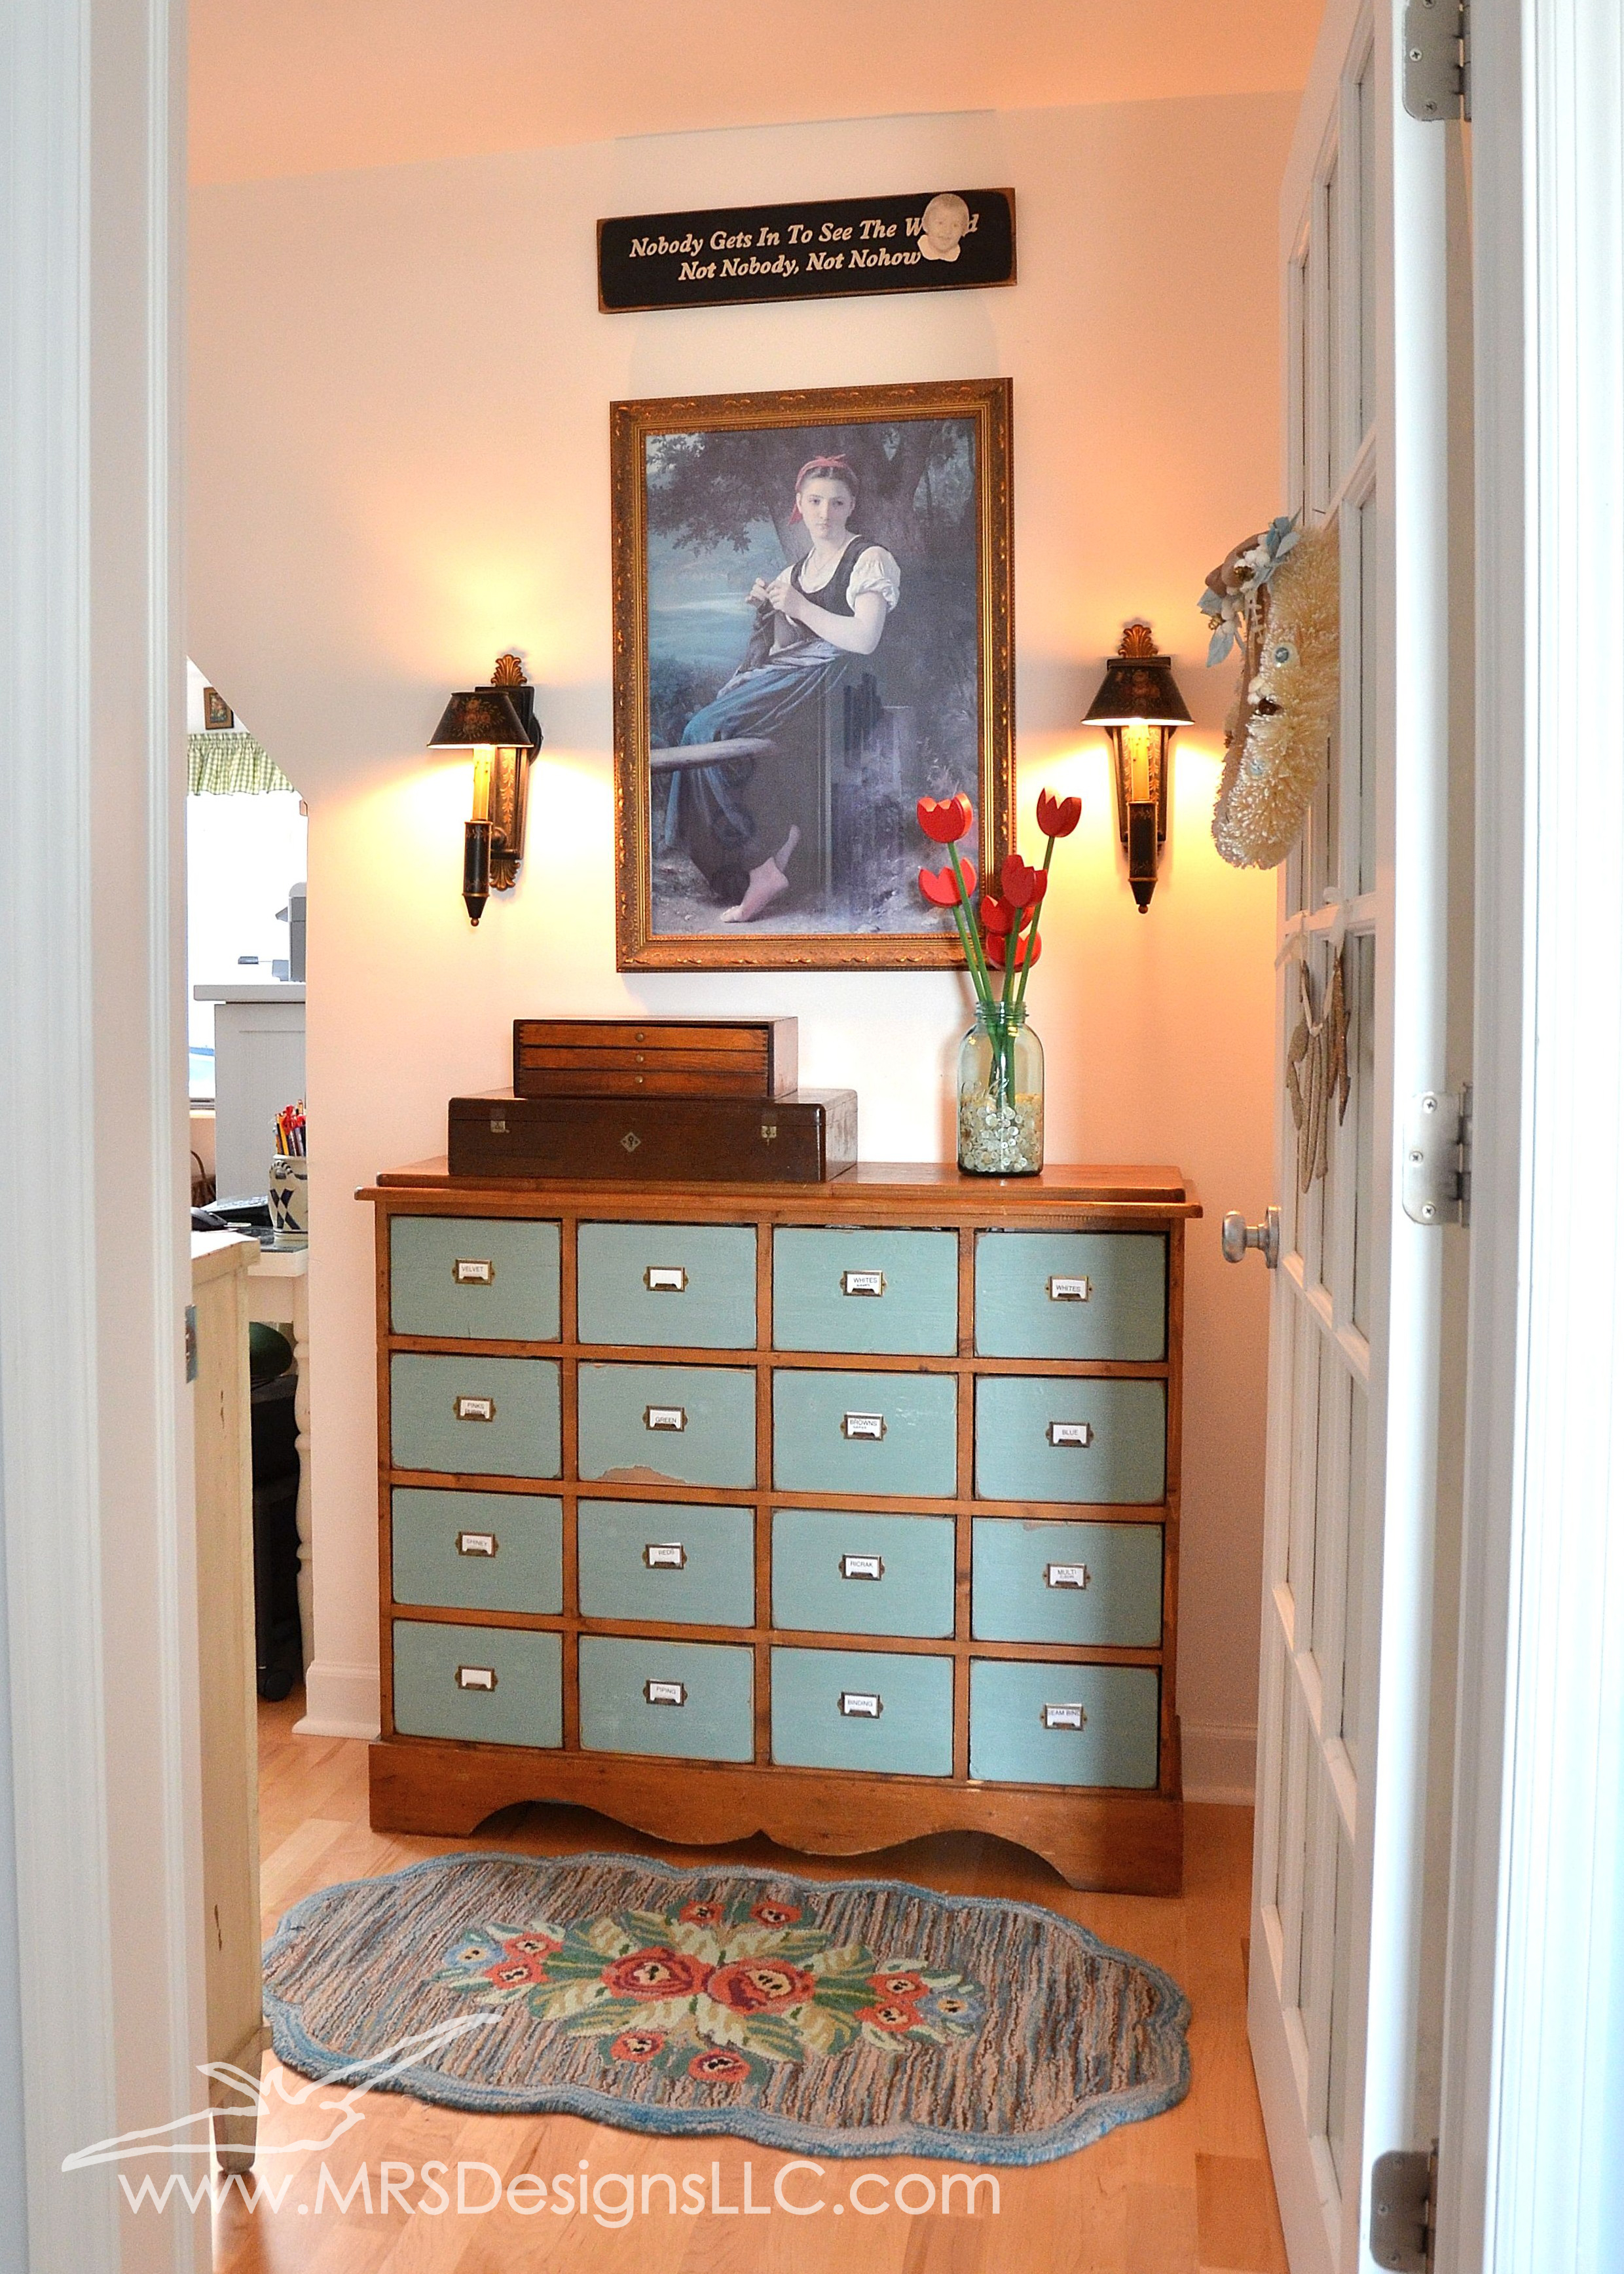 MRS Designs Blog - Refinishing a Vintage Storage Cabinet, Welcome to My Craft Room!